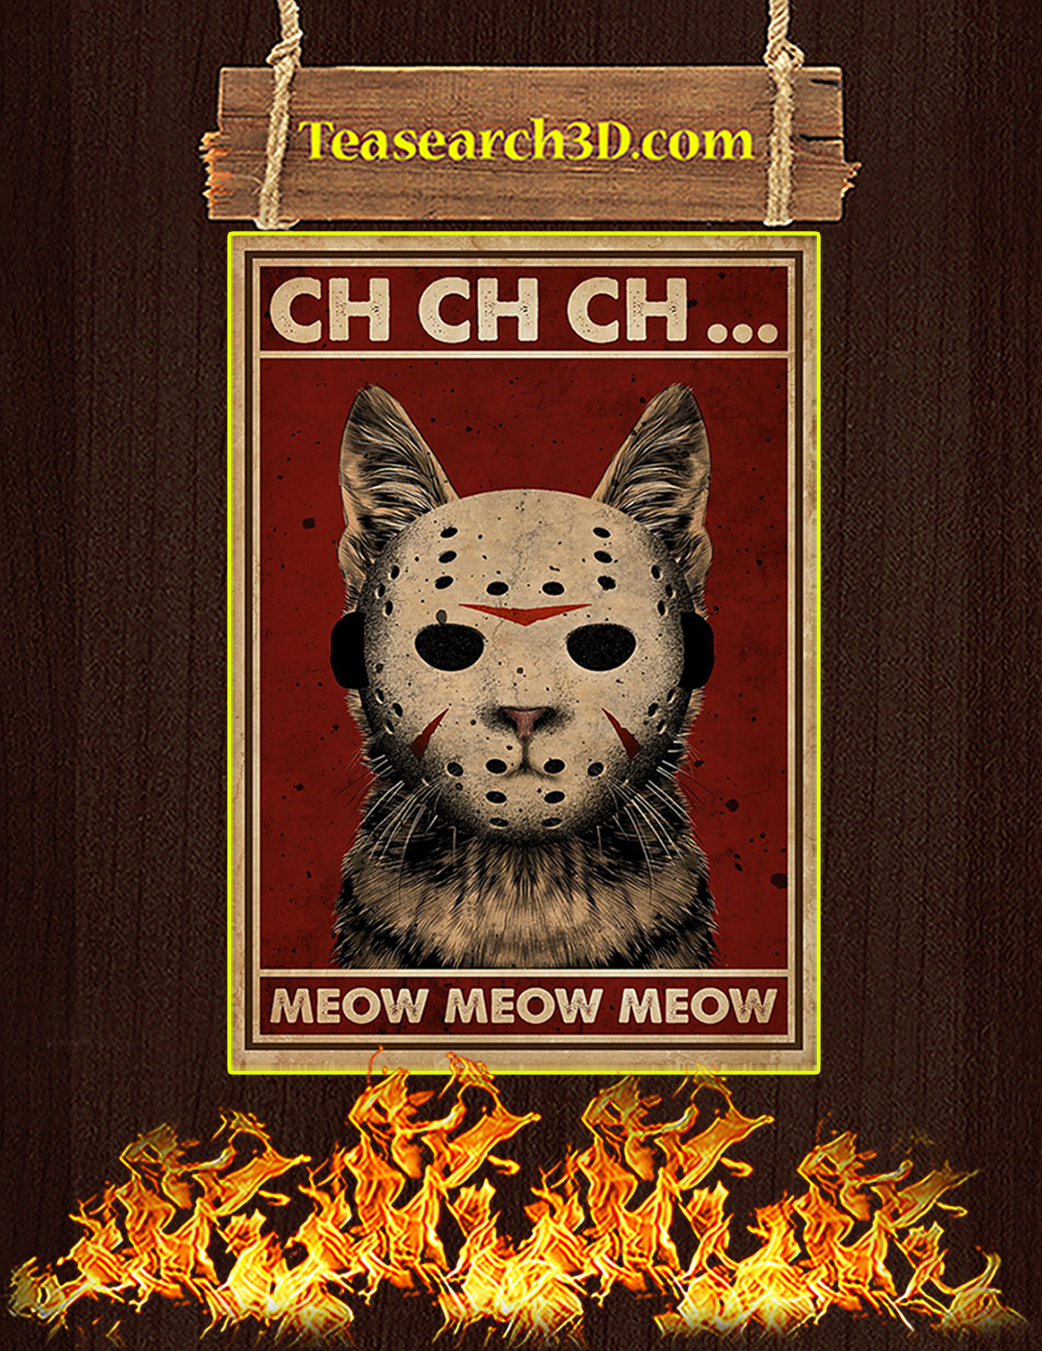 Ch ch ch meow meow meow poster A1